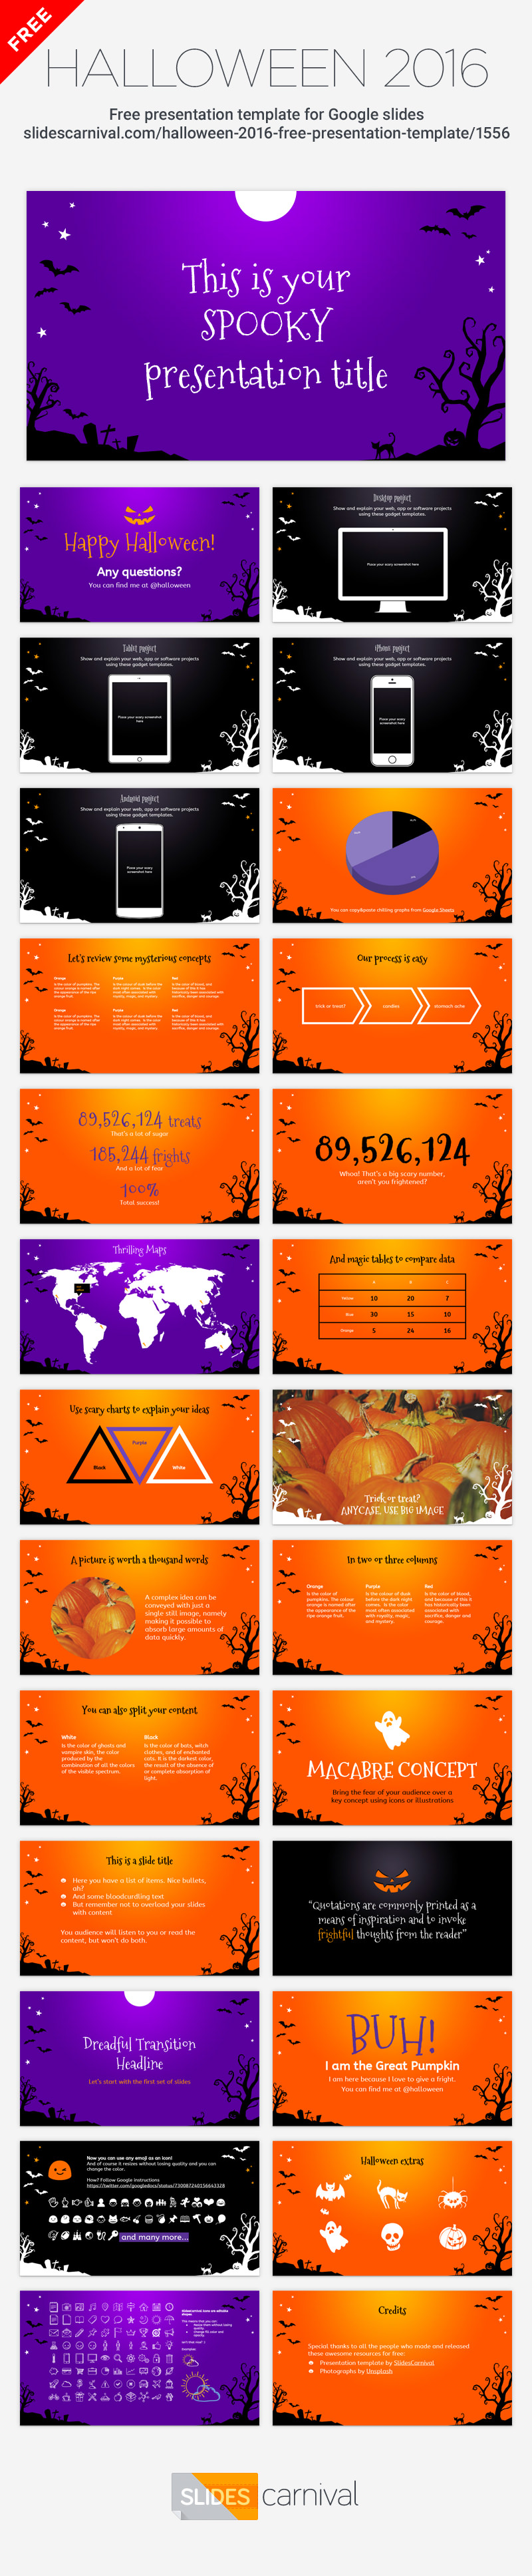 Free presentation template for Halloween funny and spooky!